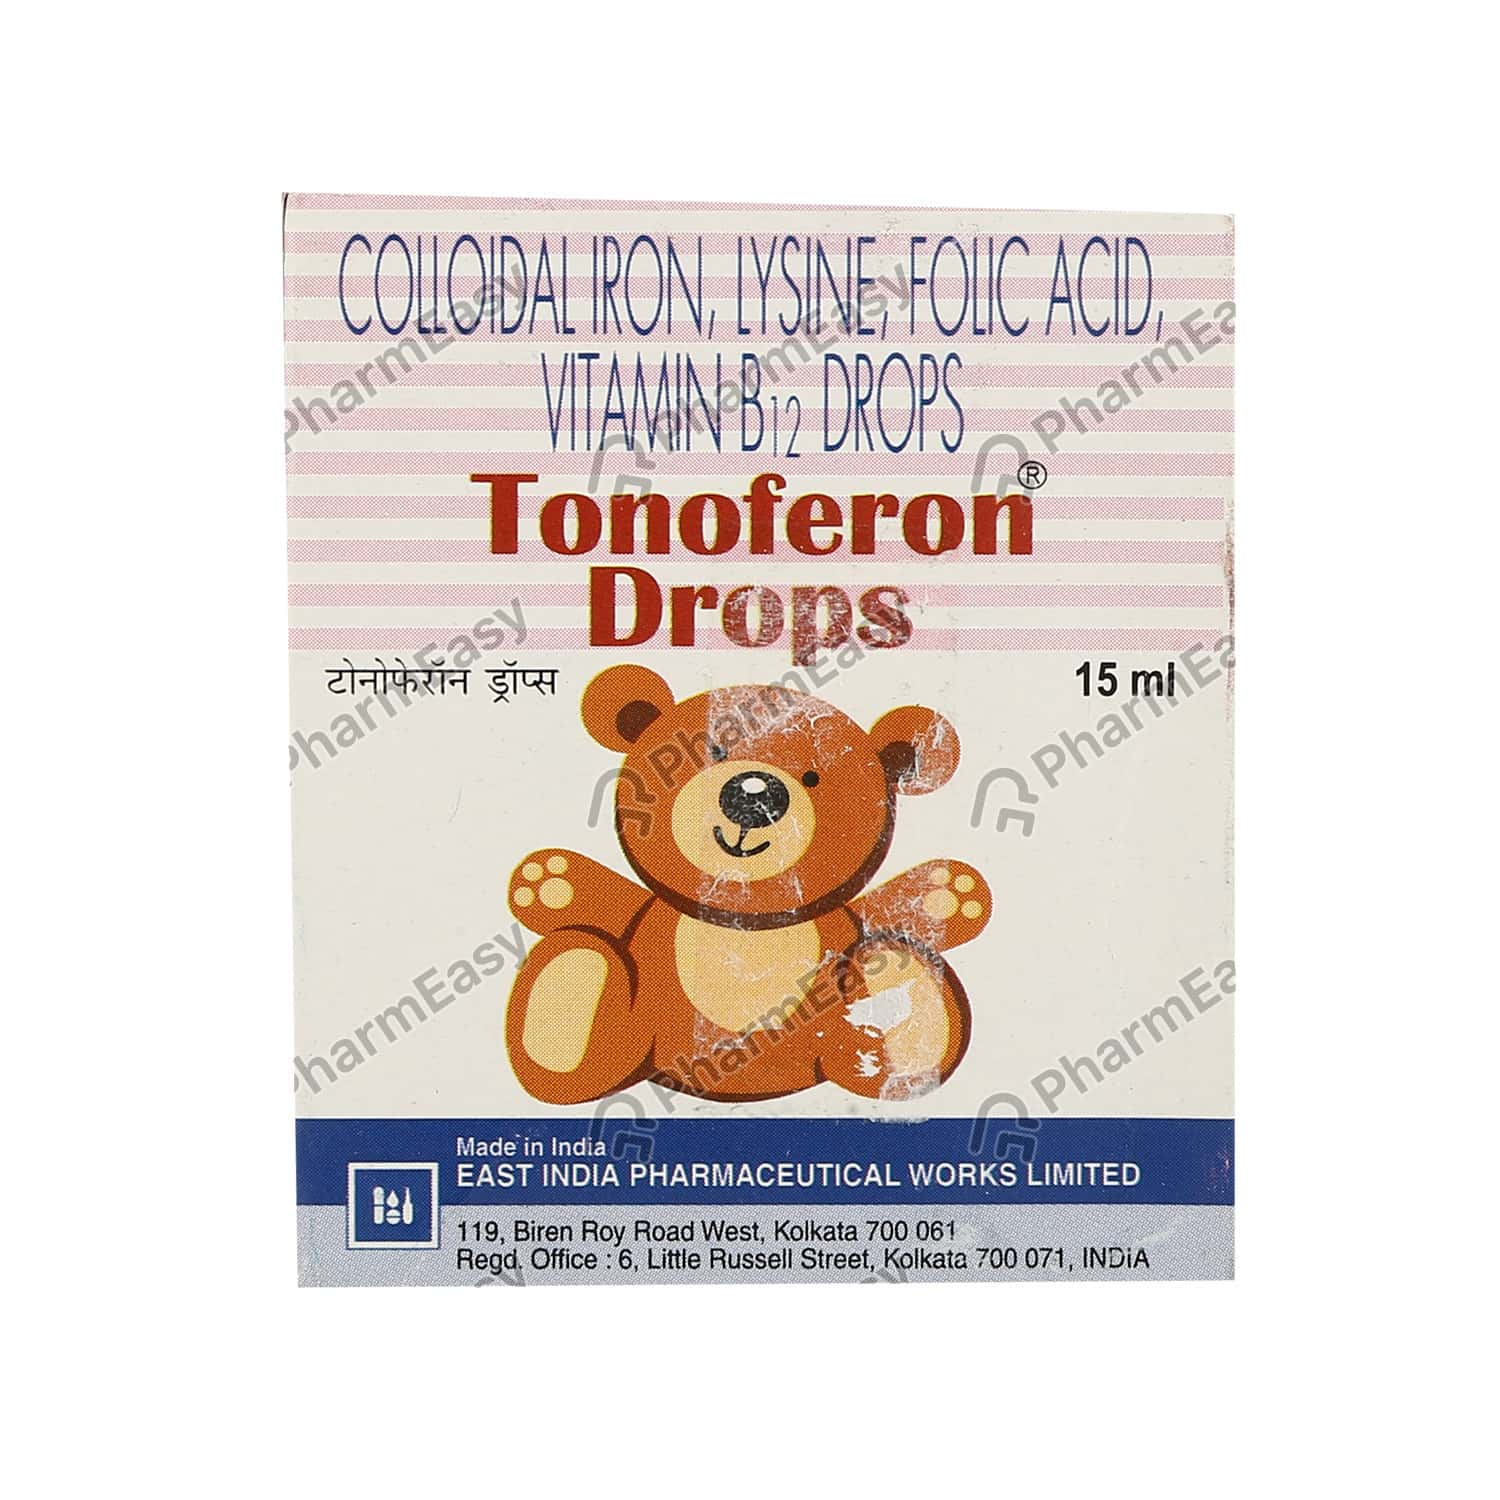 Tonoferon Drops 15ml